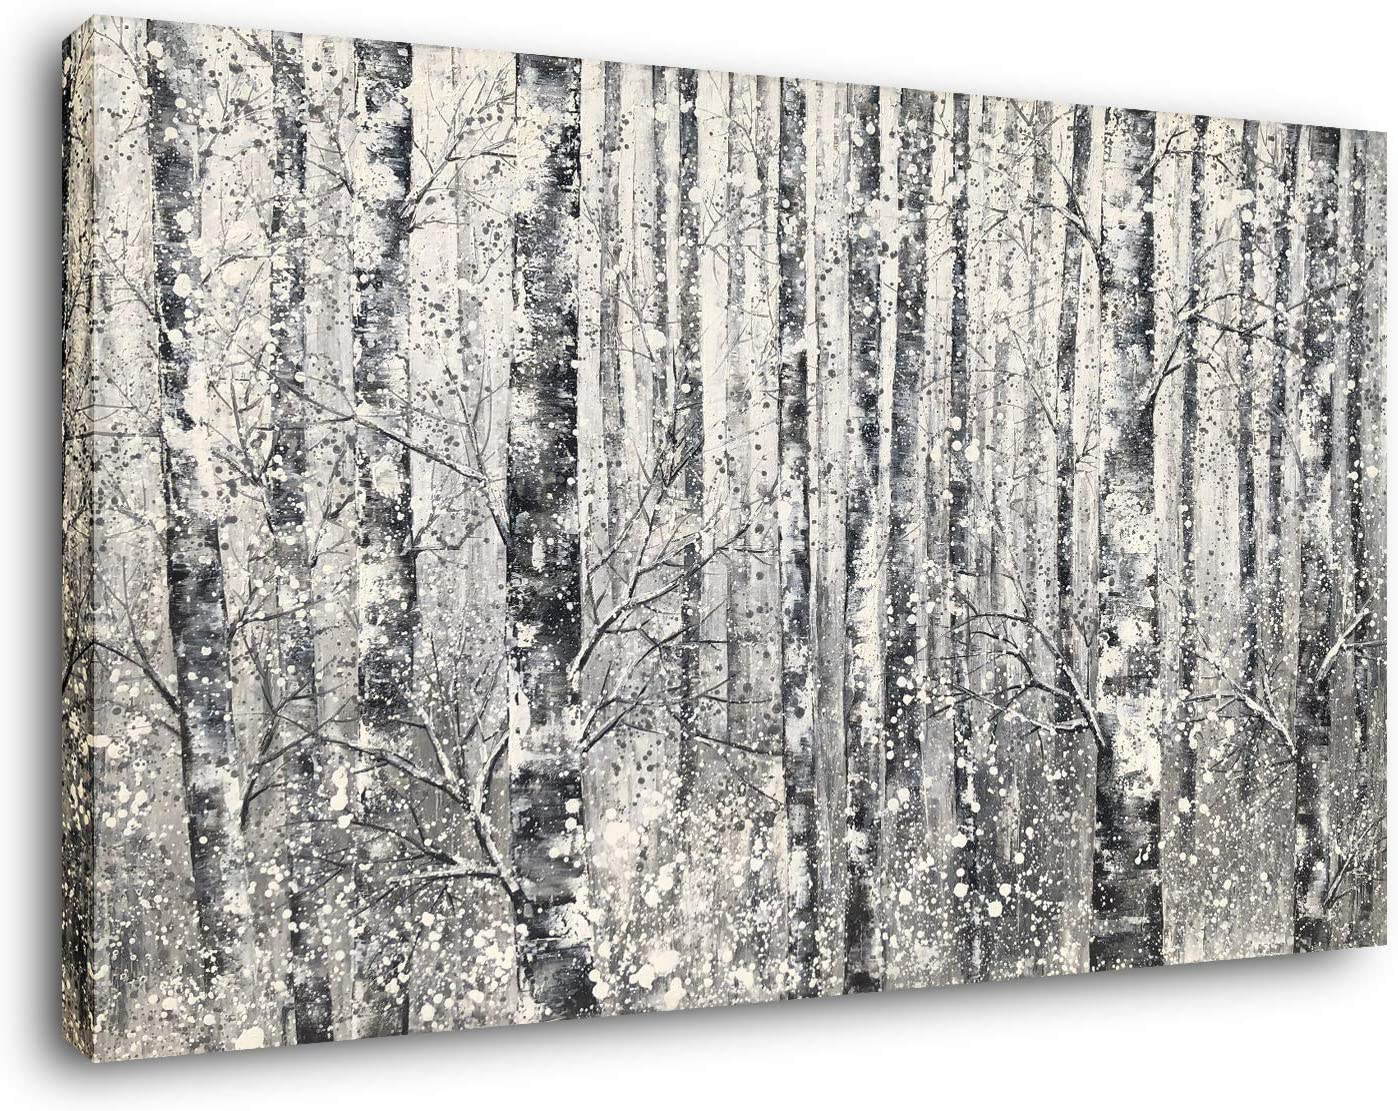 Yihui Arts - One Panel Canvas Wall Art Snowy White Forest Picture Art Print Winter Nature Landscape Painting Contemporary Artwork for Bedroom Living Room Office Wall Decor Framed Easy Hanging